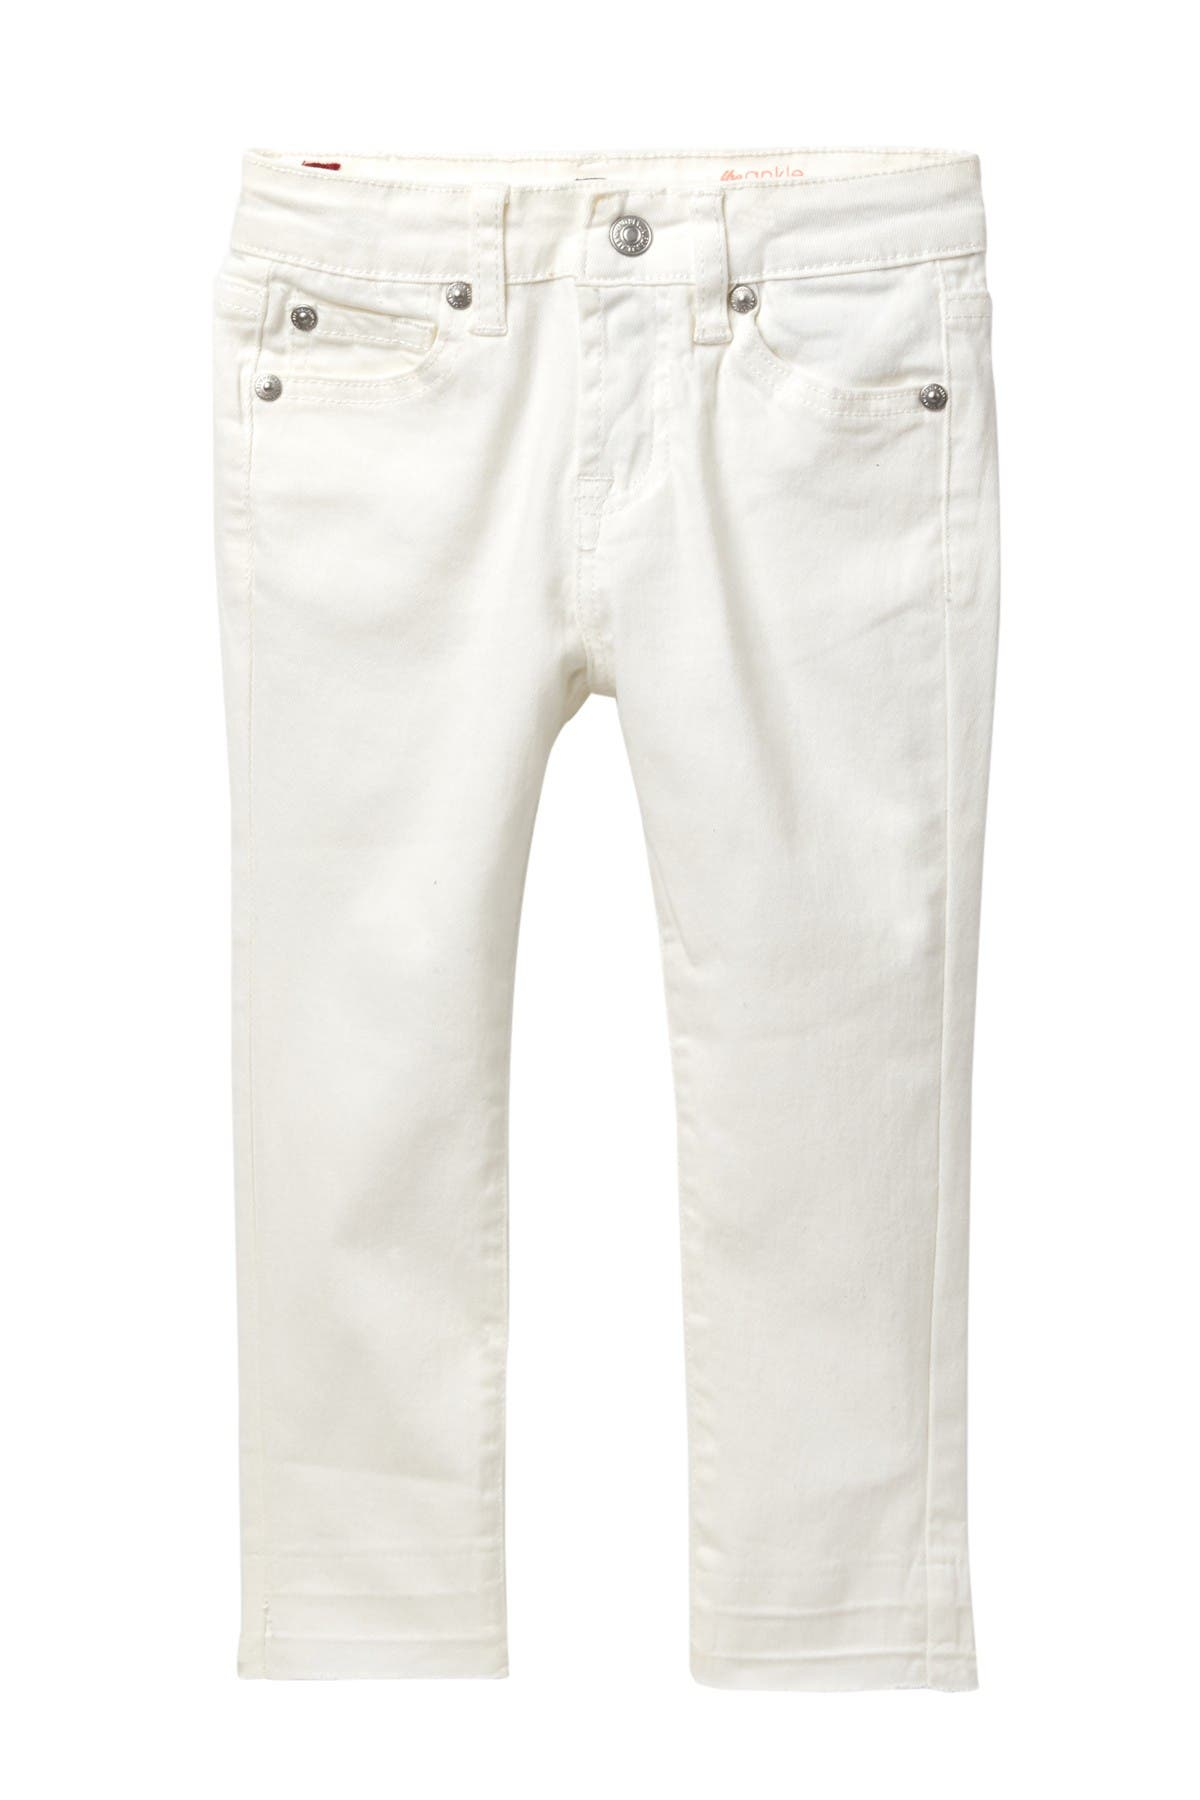 Image of 7 For All Mankind The Ankle Skinny Jeans